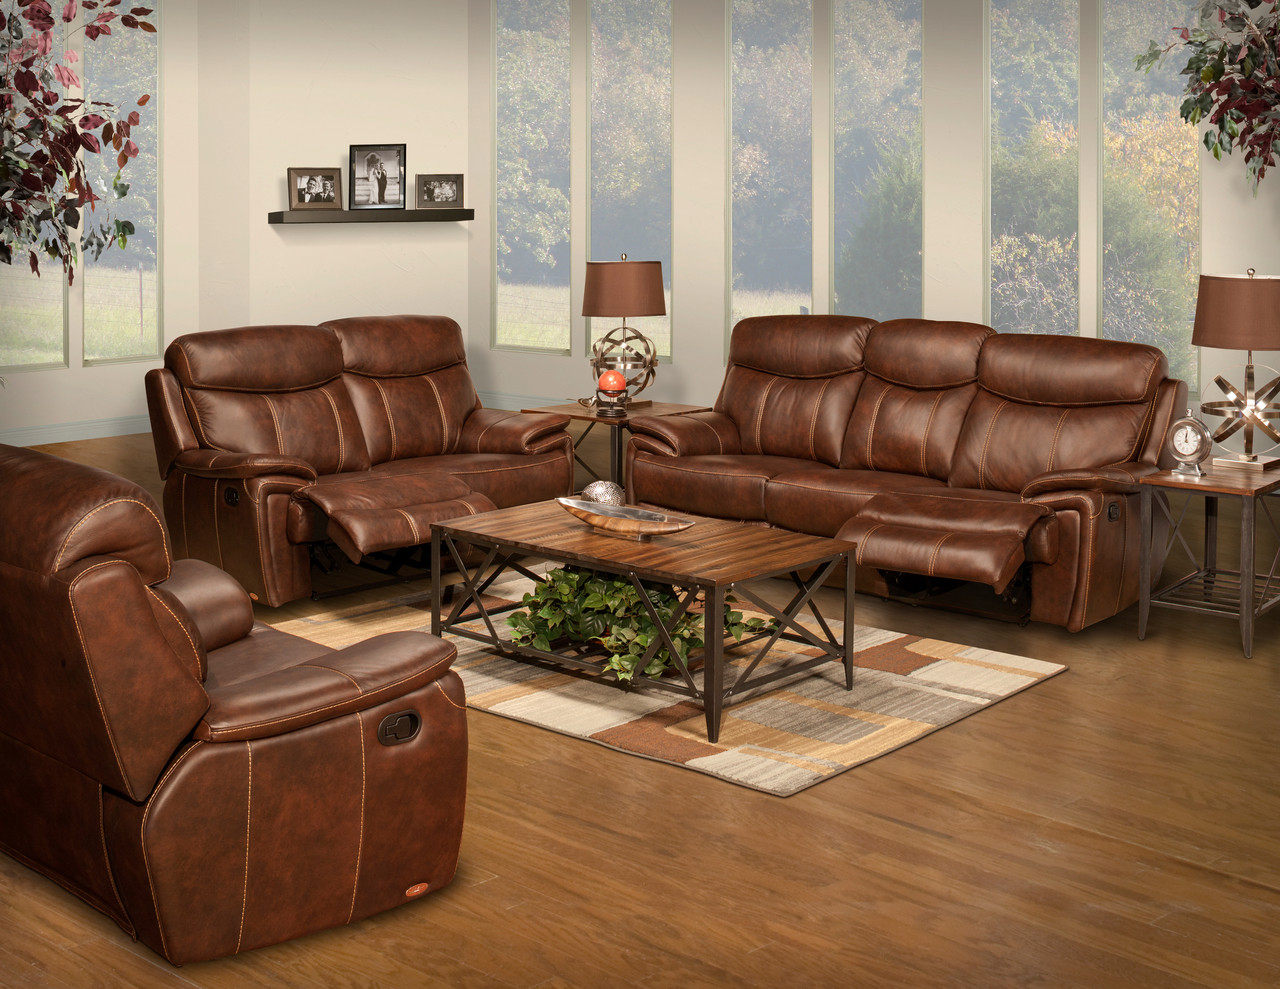 Legend Brown Top Grain Leather Reclining Sofa